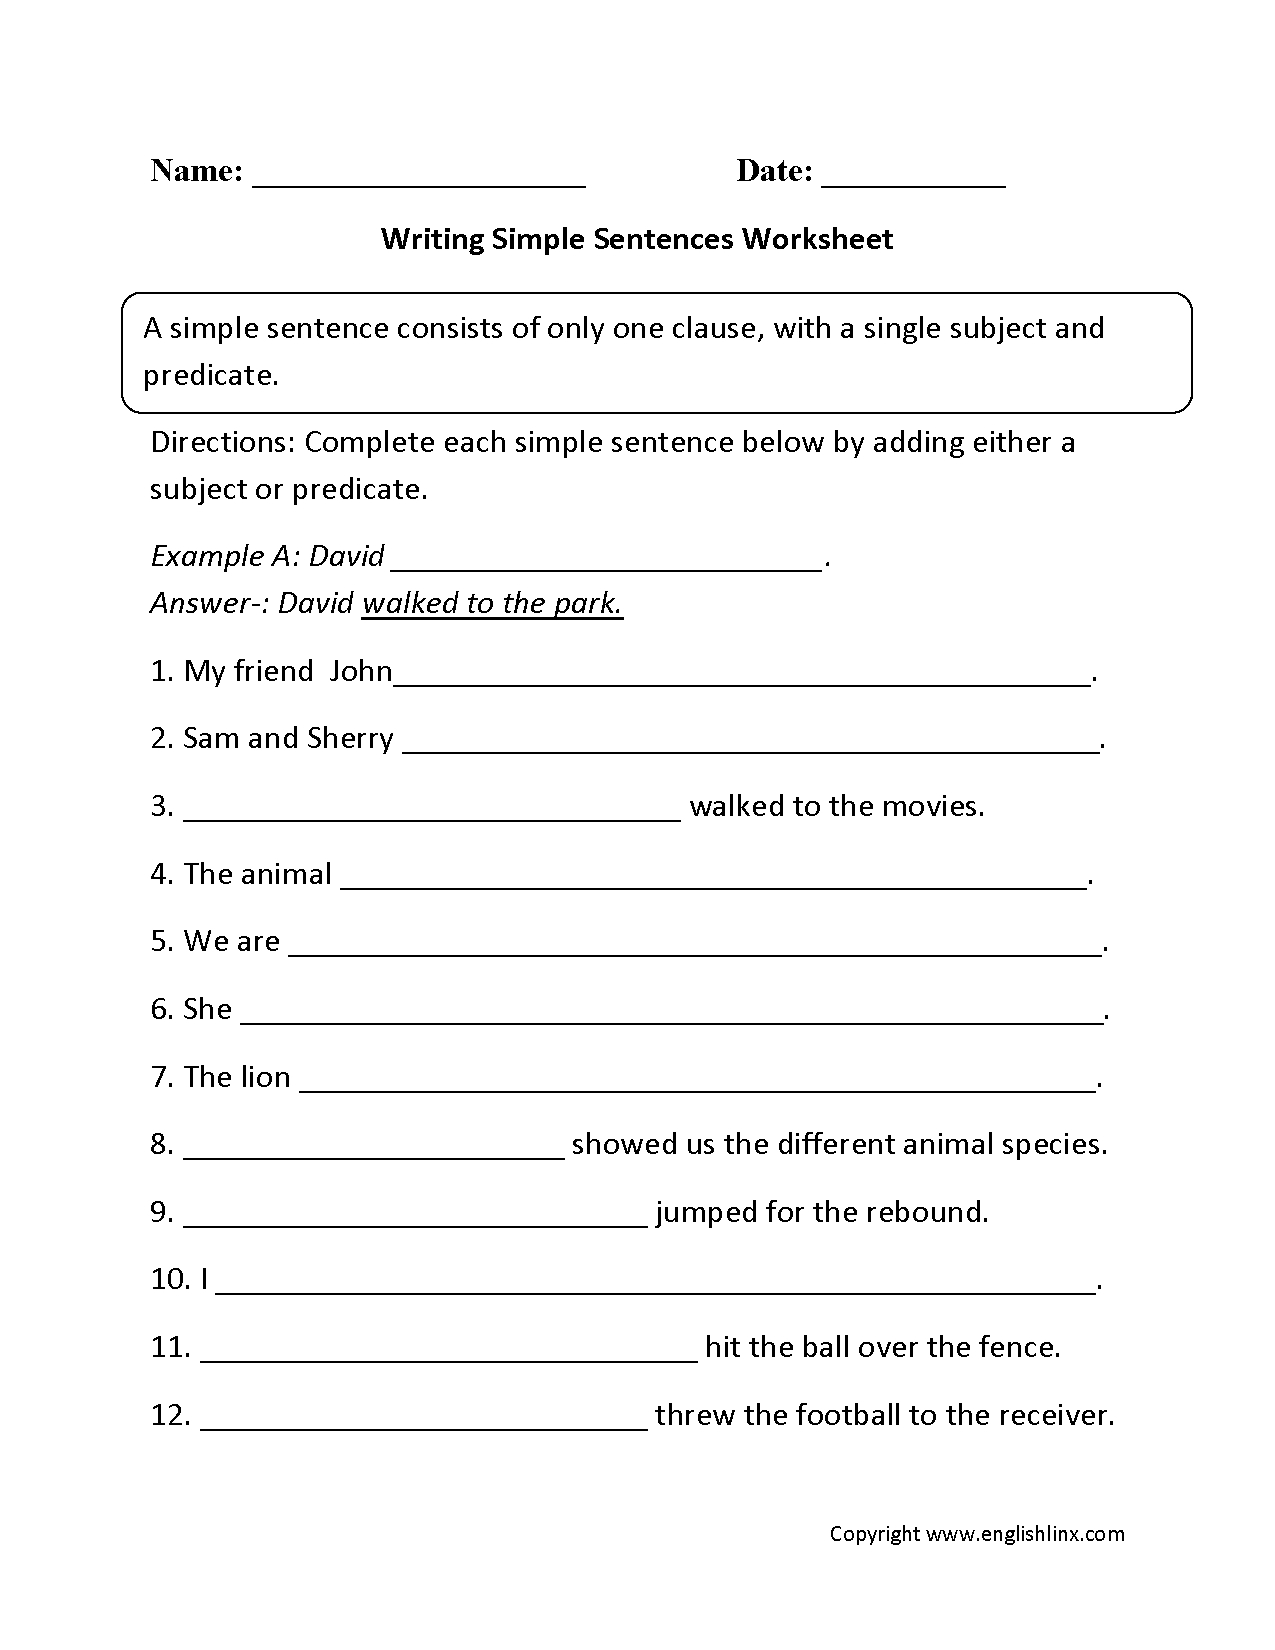 Sentences Worksheets | Simple Sentences Worksheets | 7Th Grade Writing Worksheets Printable